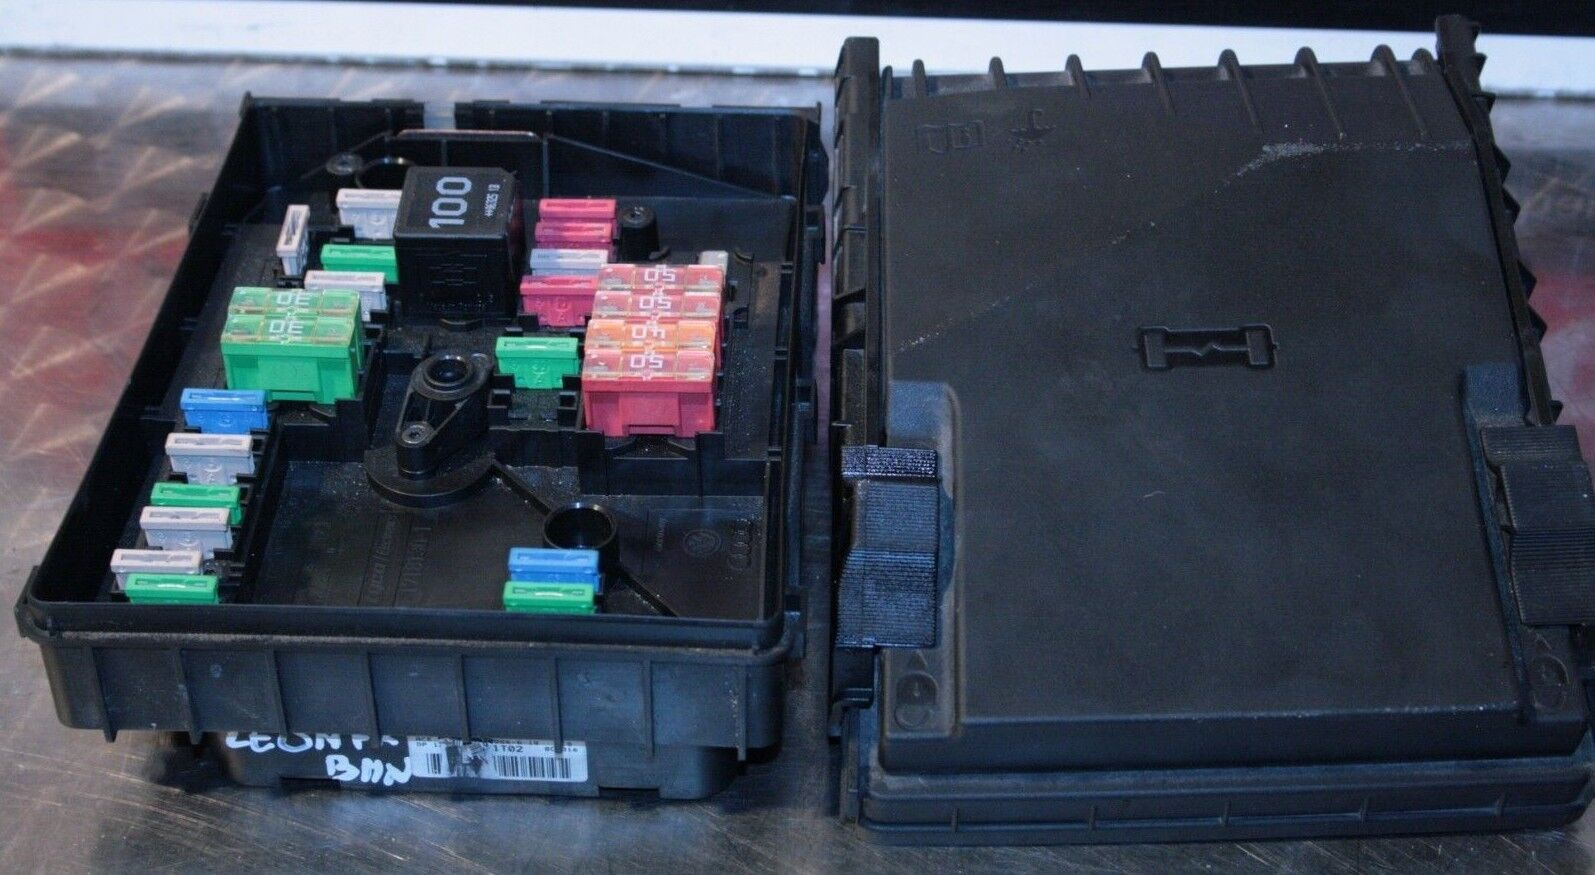 Seat Leon Mk2 Fuse Box Location Wiring Library Audi Tt 2007 Fr 20 Tdi Bmn 1k0937125a 1 Of 7 See More